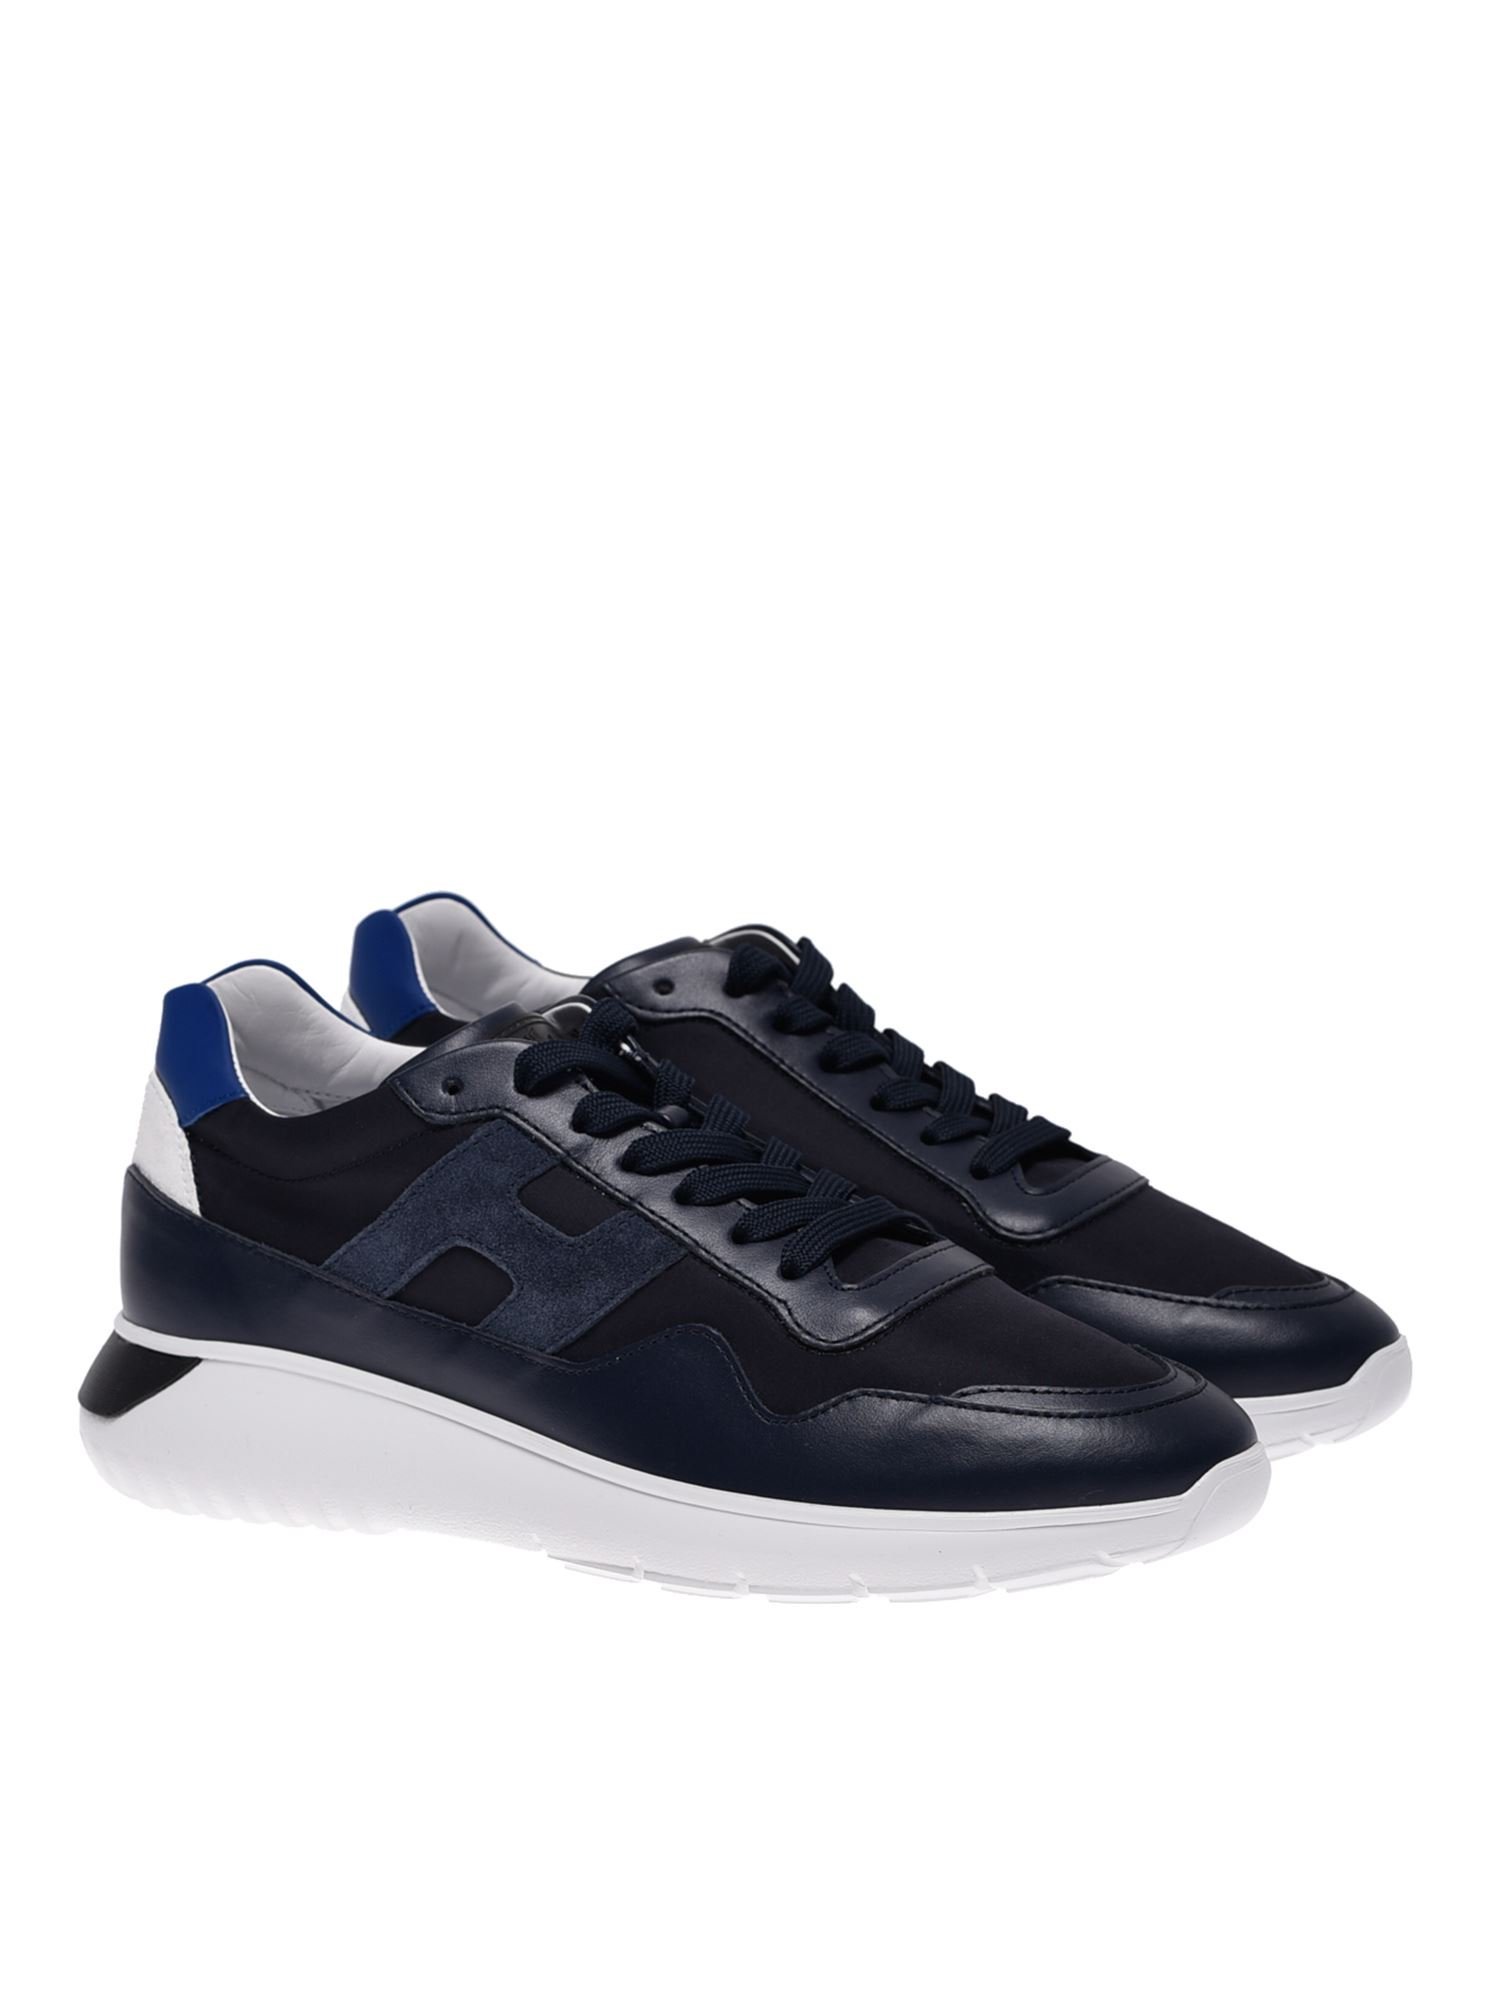 Hogan INTERACTIVE SNEAKERS IN BLUE